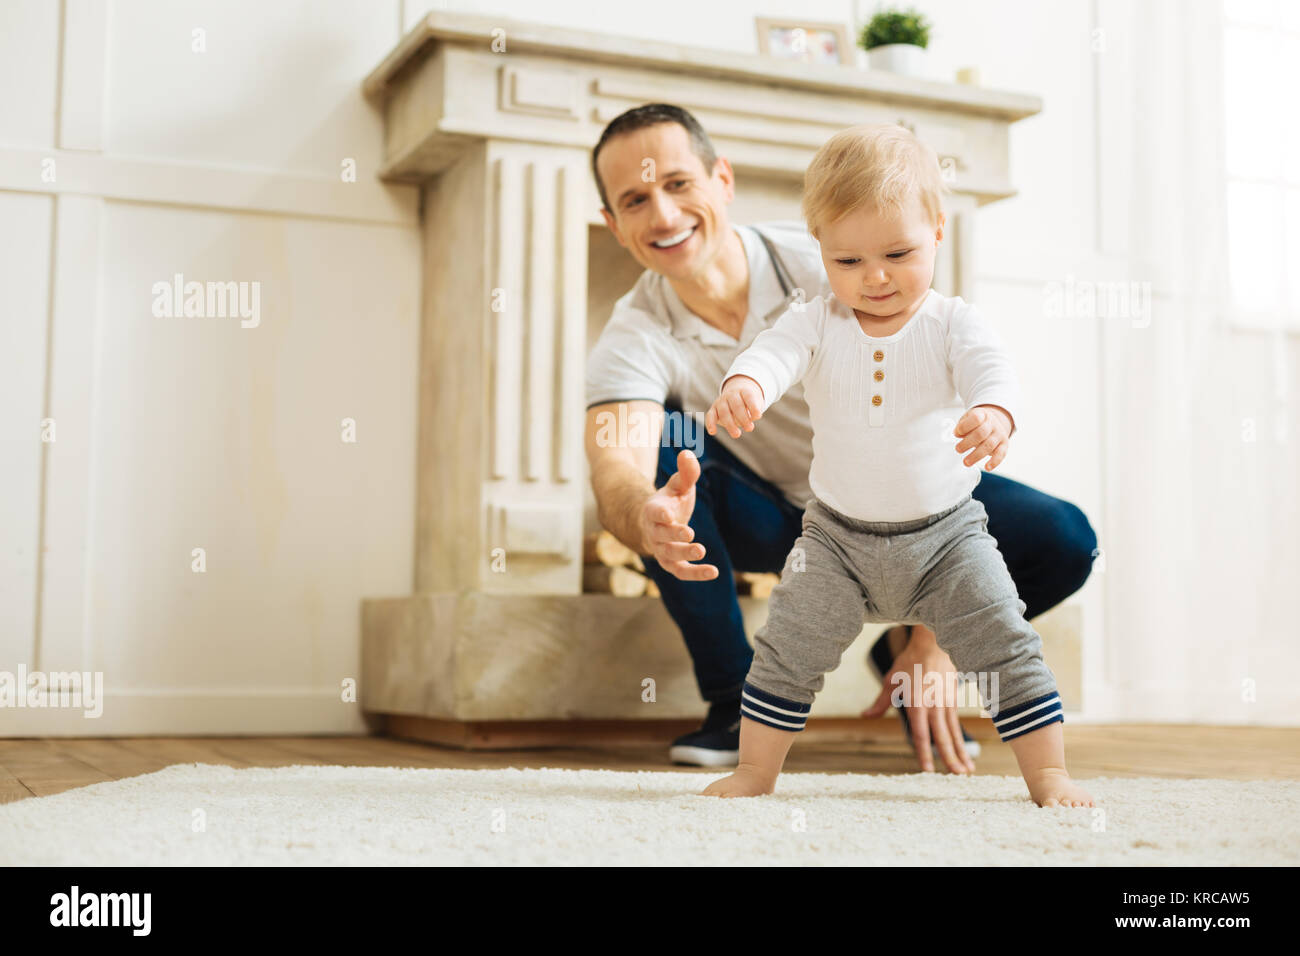 Happy baby trying to stand up while a cheerful father being ready to help - Stock Image